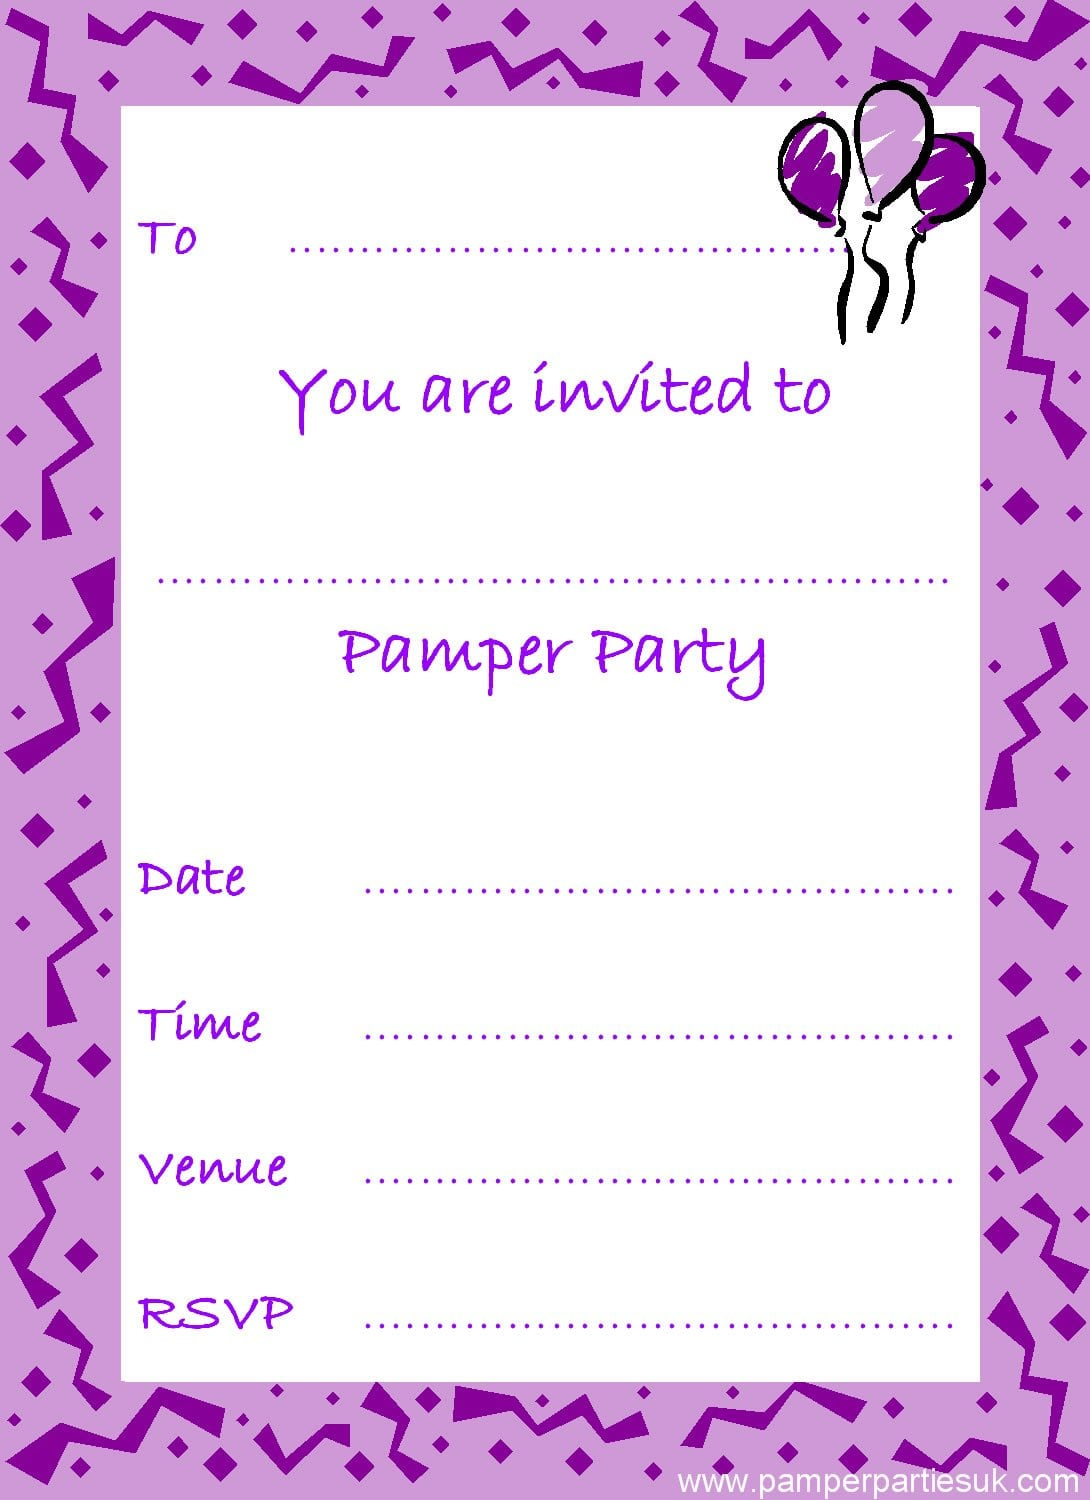 free printable invitation crafthubs printable pamper party invitations 47788 printable party invitations online printable party invitations online - Free Online Printables